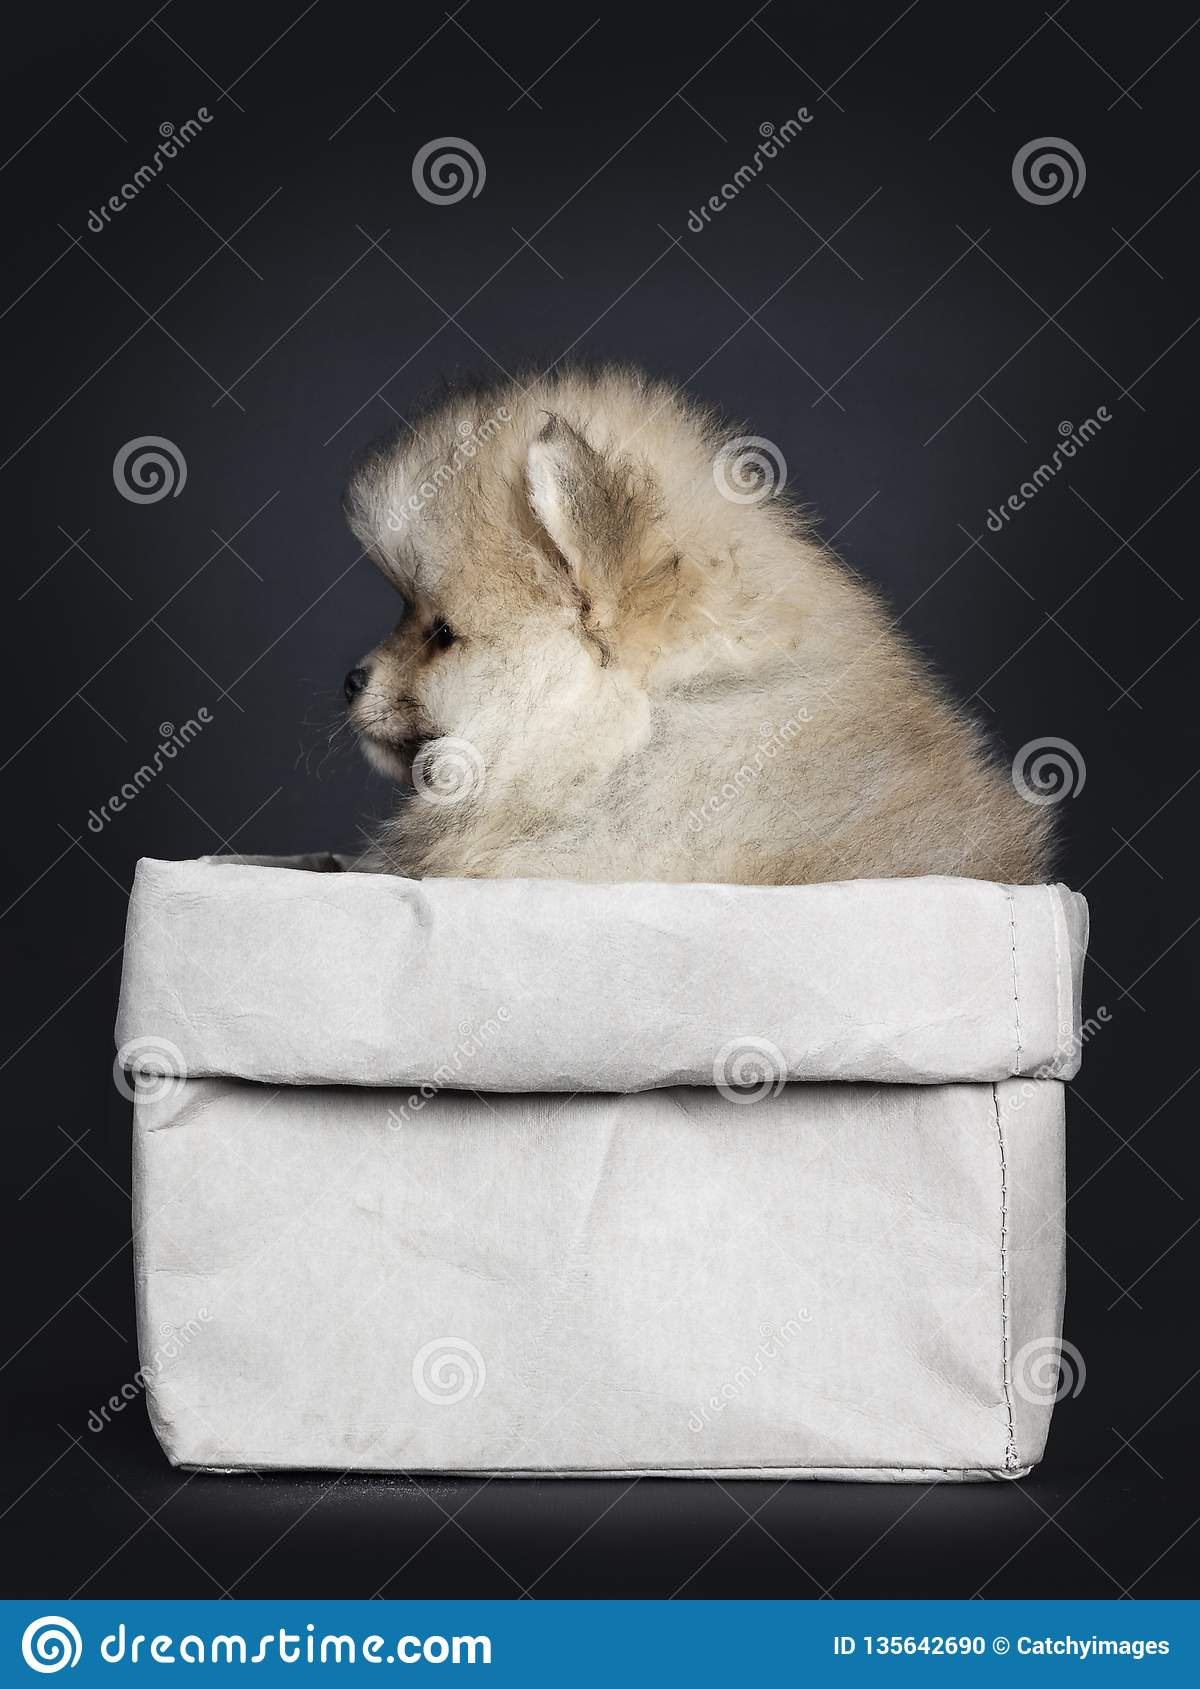 Cute Baby Pomeranian Puppy, Isolated On Black Background